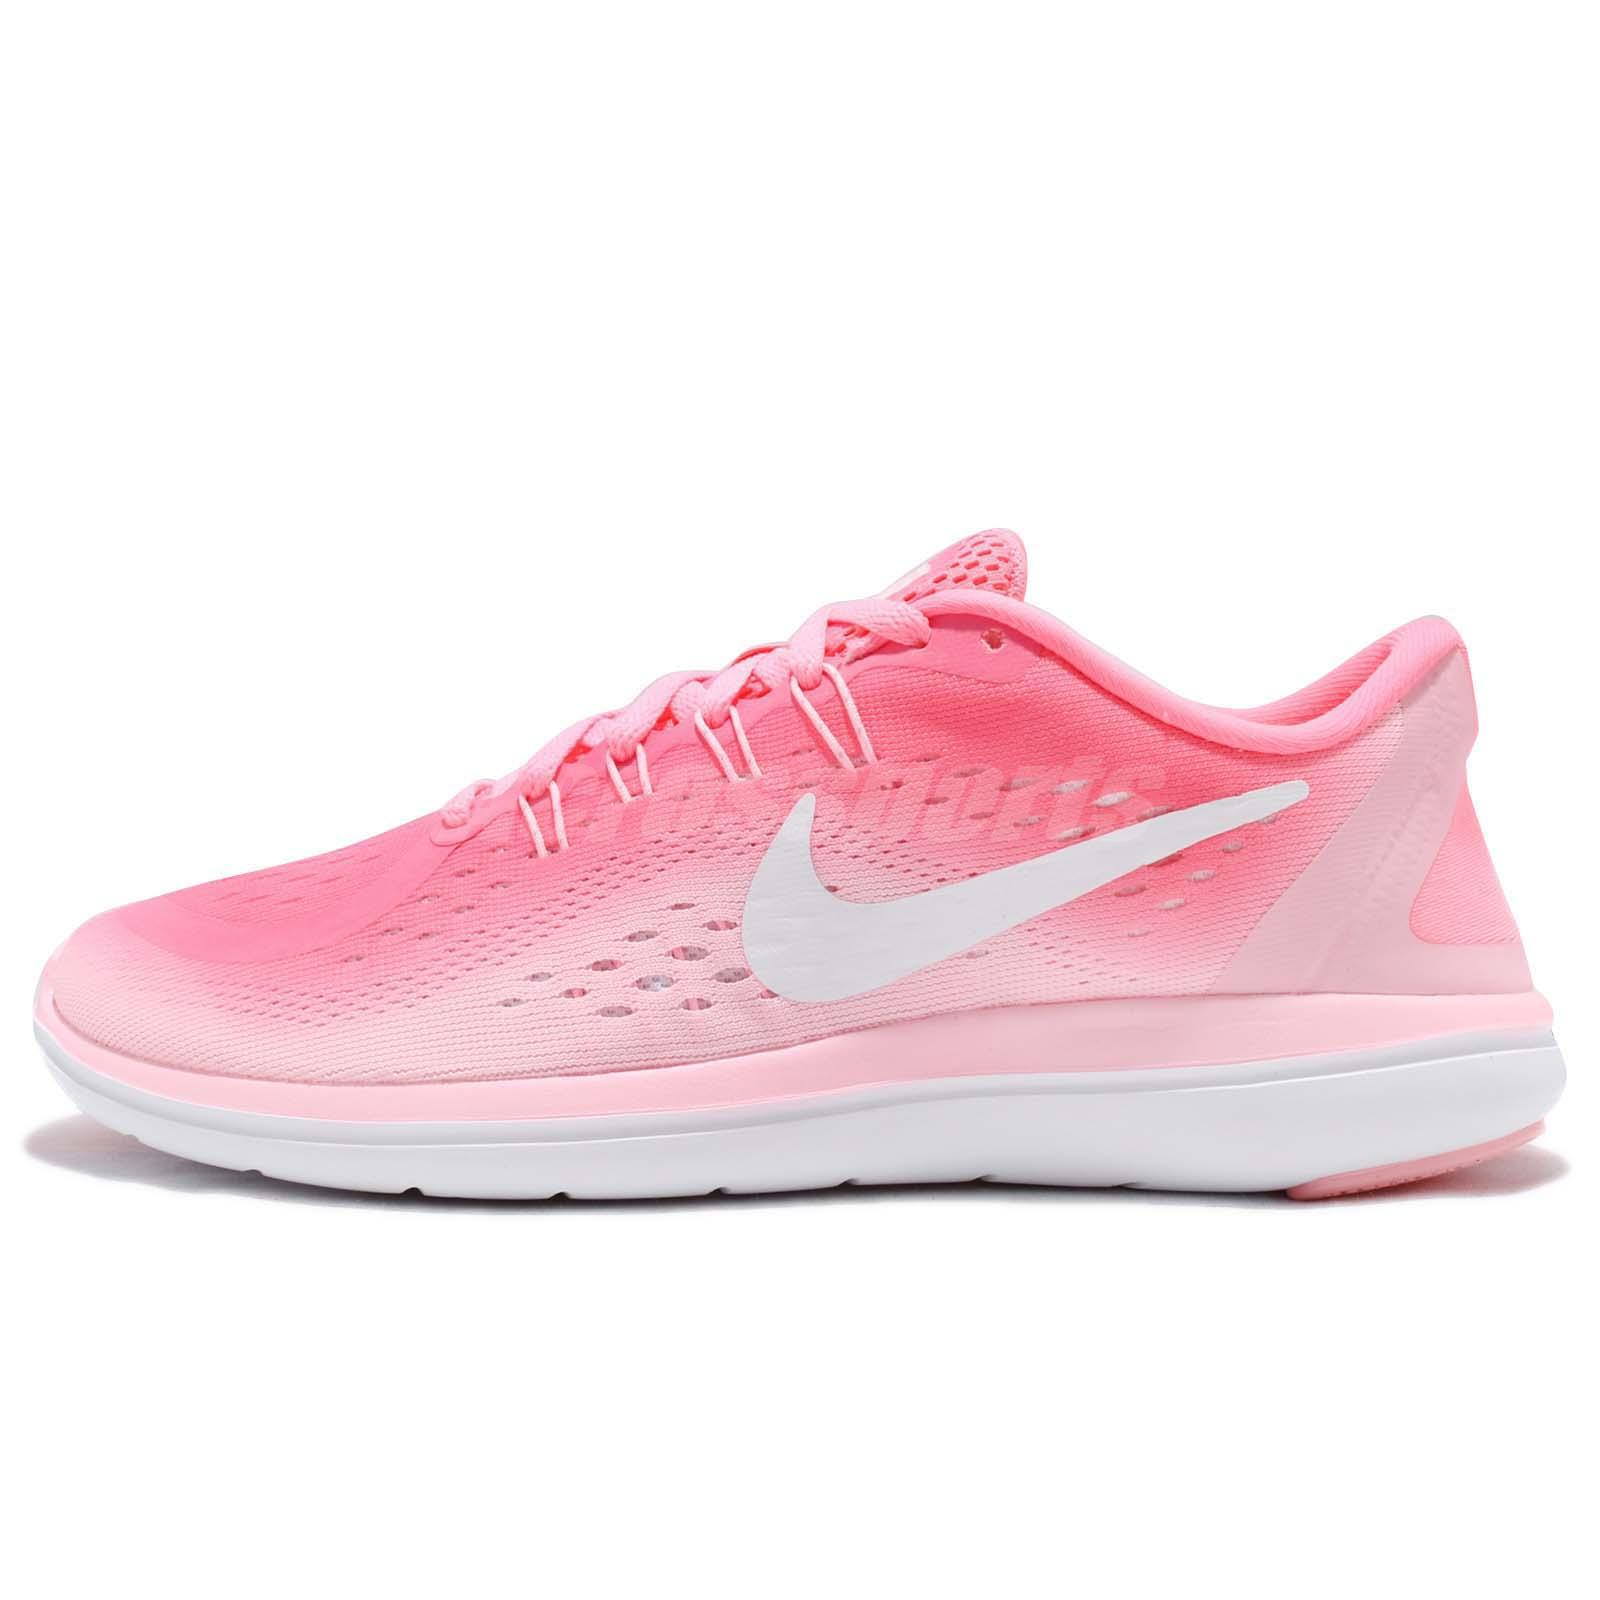 7955a448307c0 Wmns Nike Flex 2017 RN Pink Sunset Pulse Women Running Shoes Sneakers  898476-601